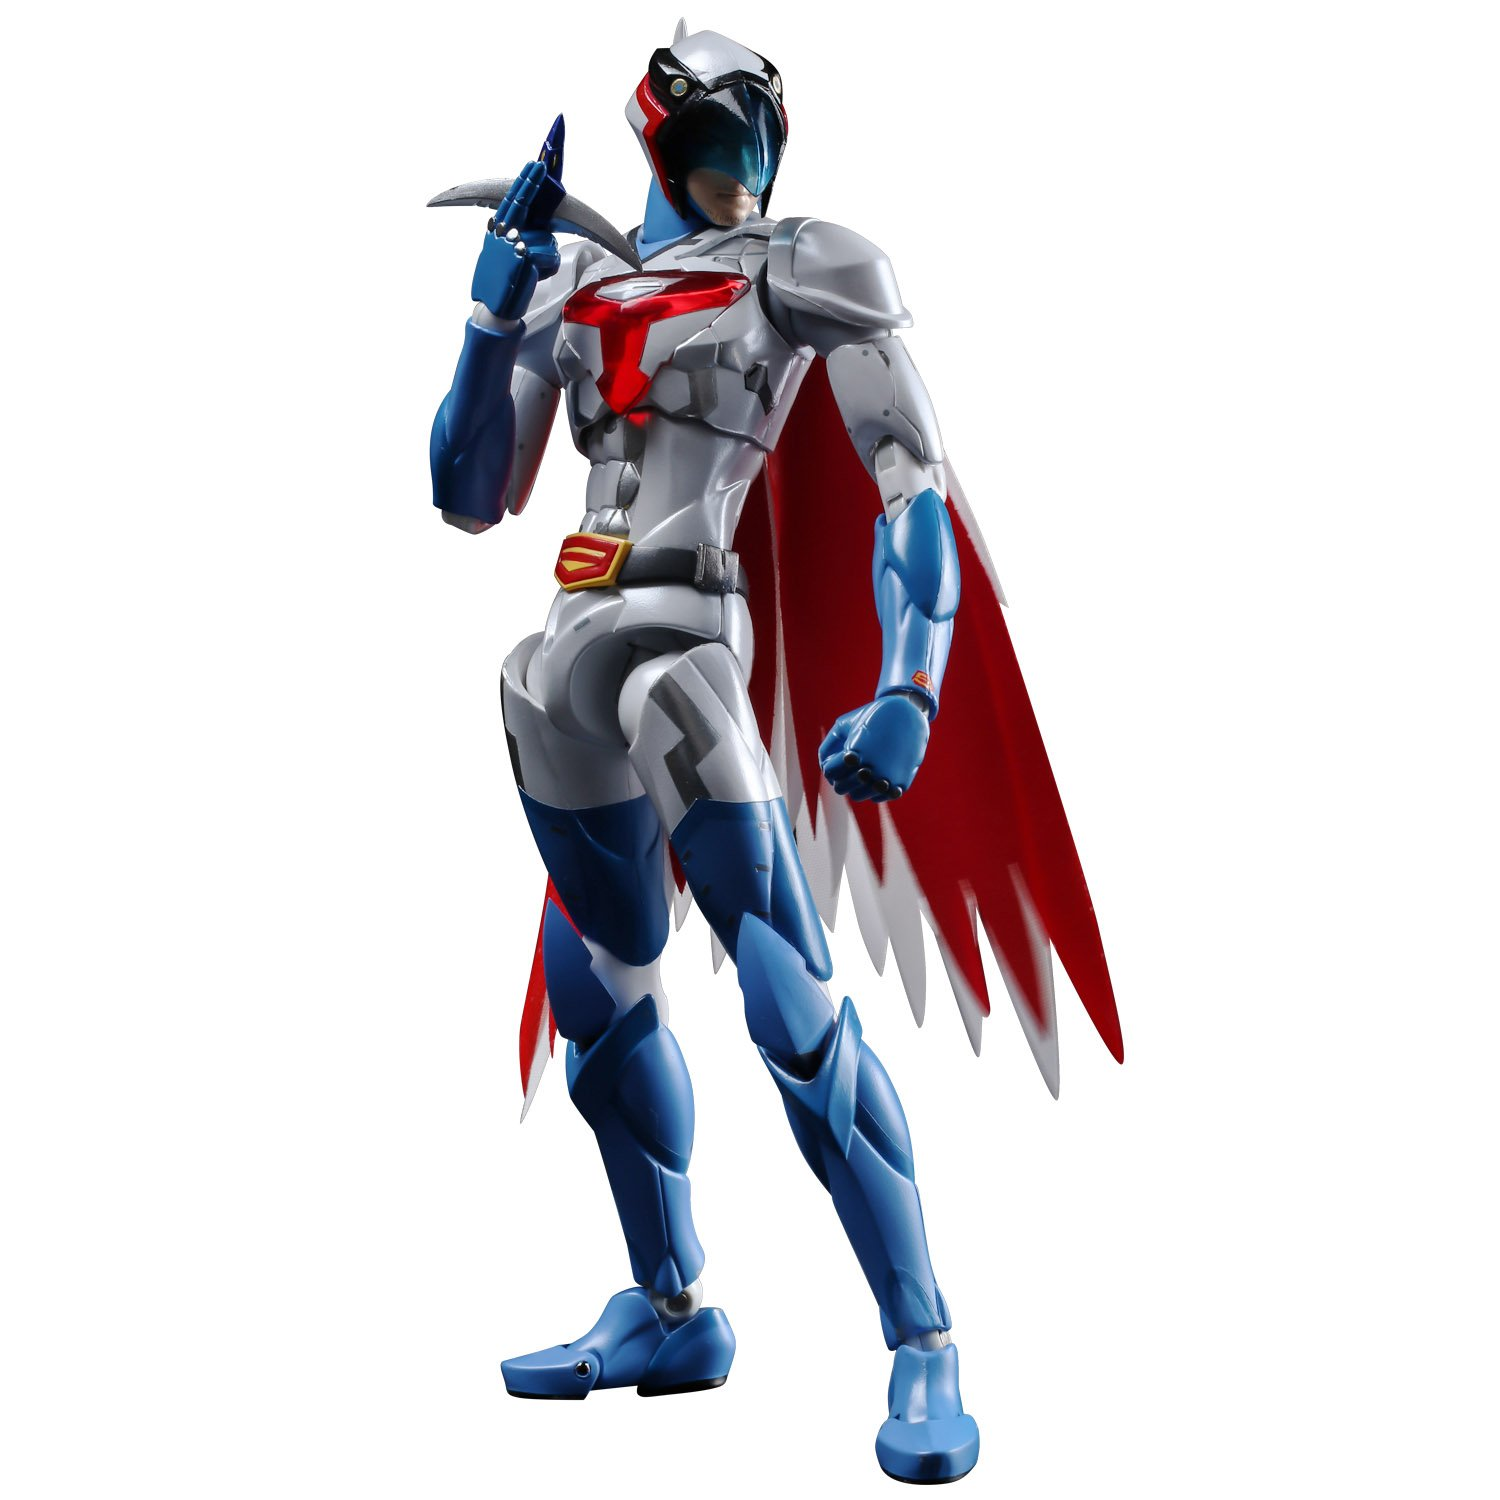 Infini-T Force Gatchaman Fighter Gear Ver. B0769KJ5N7